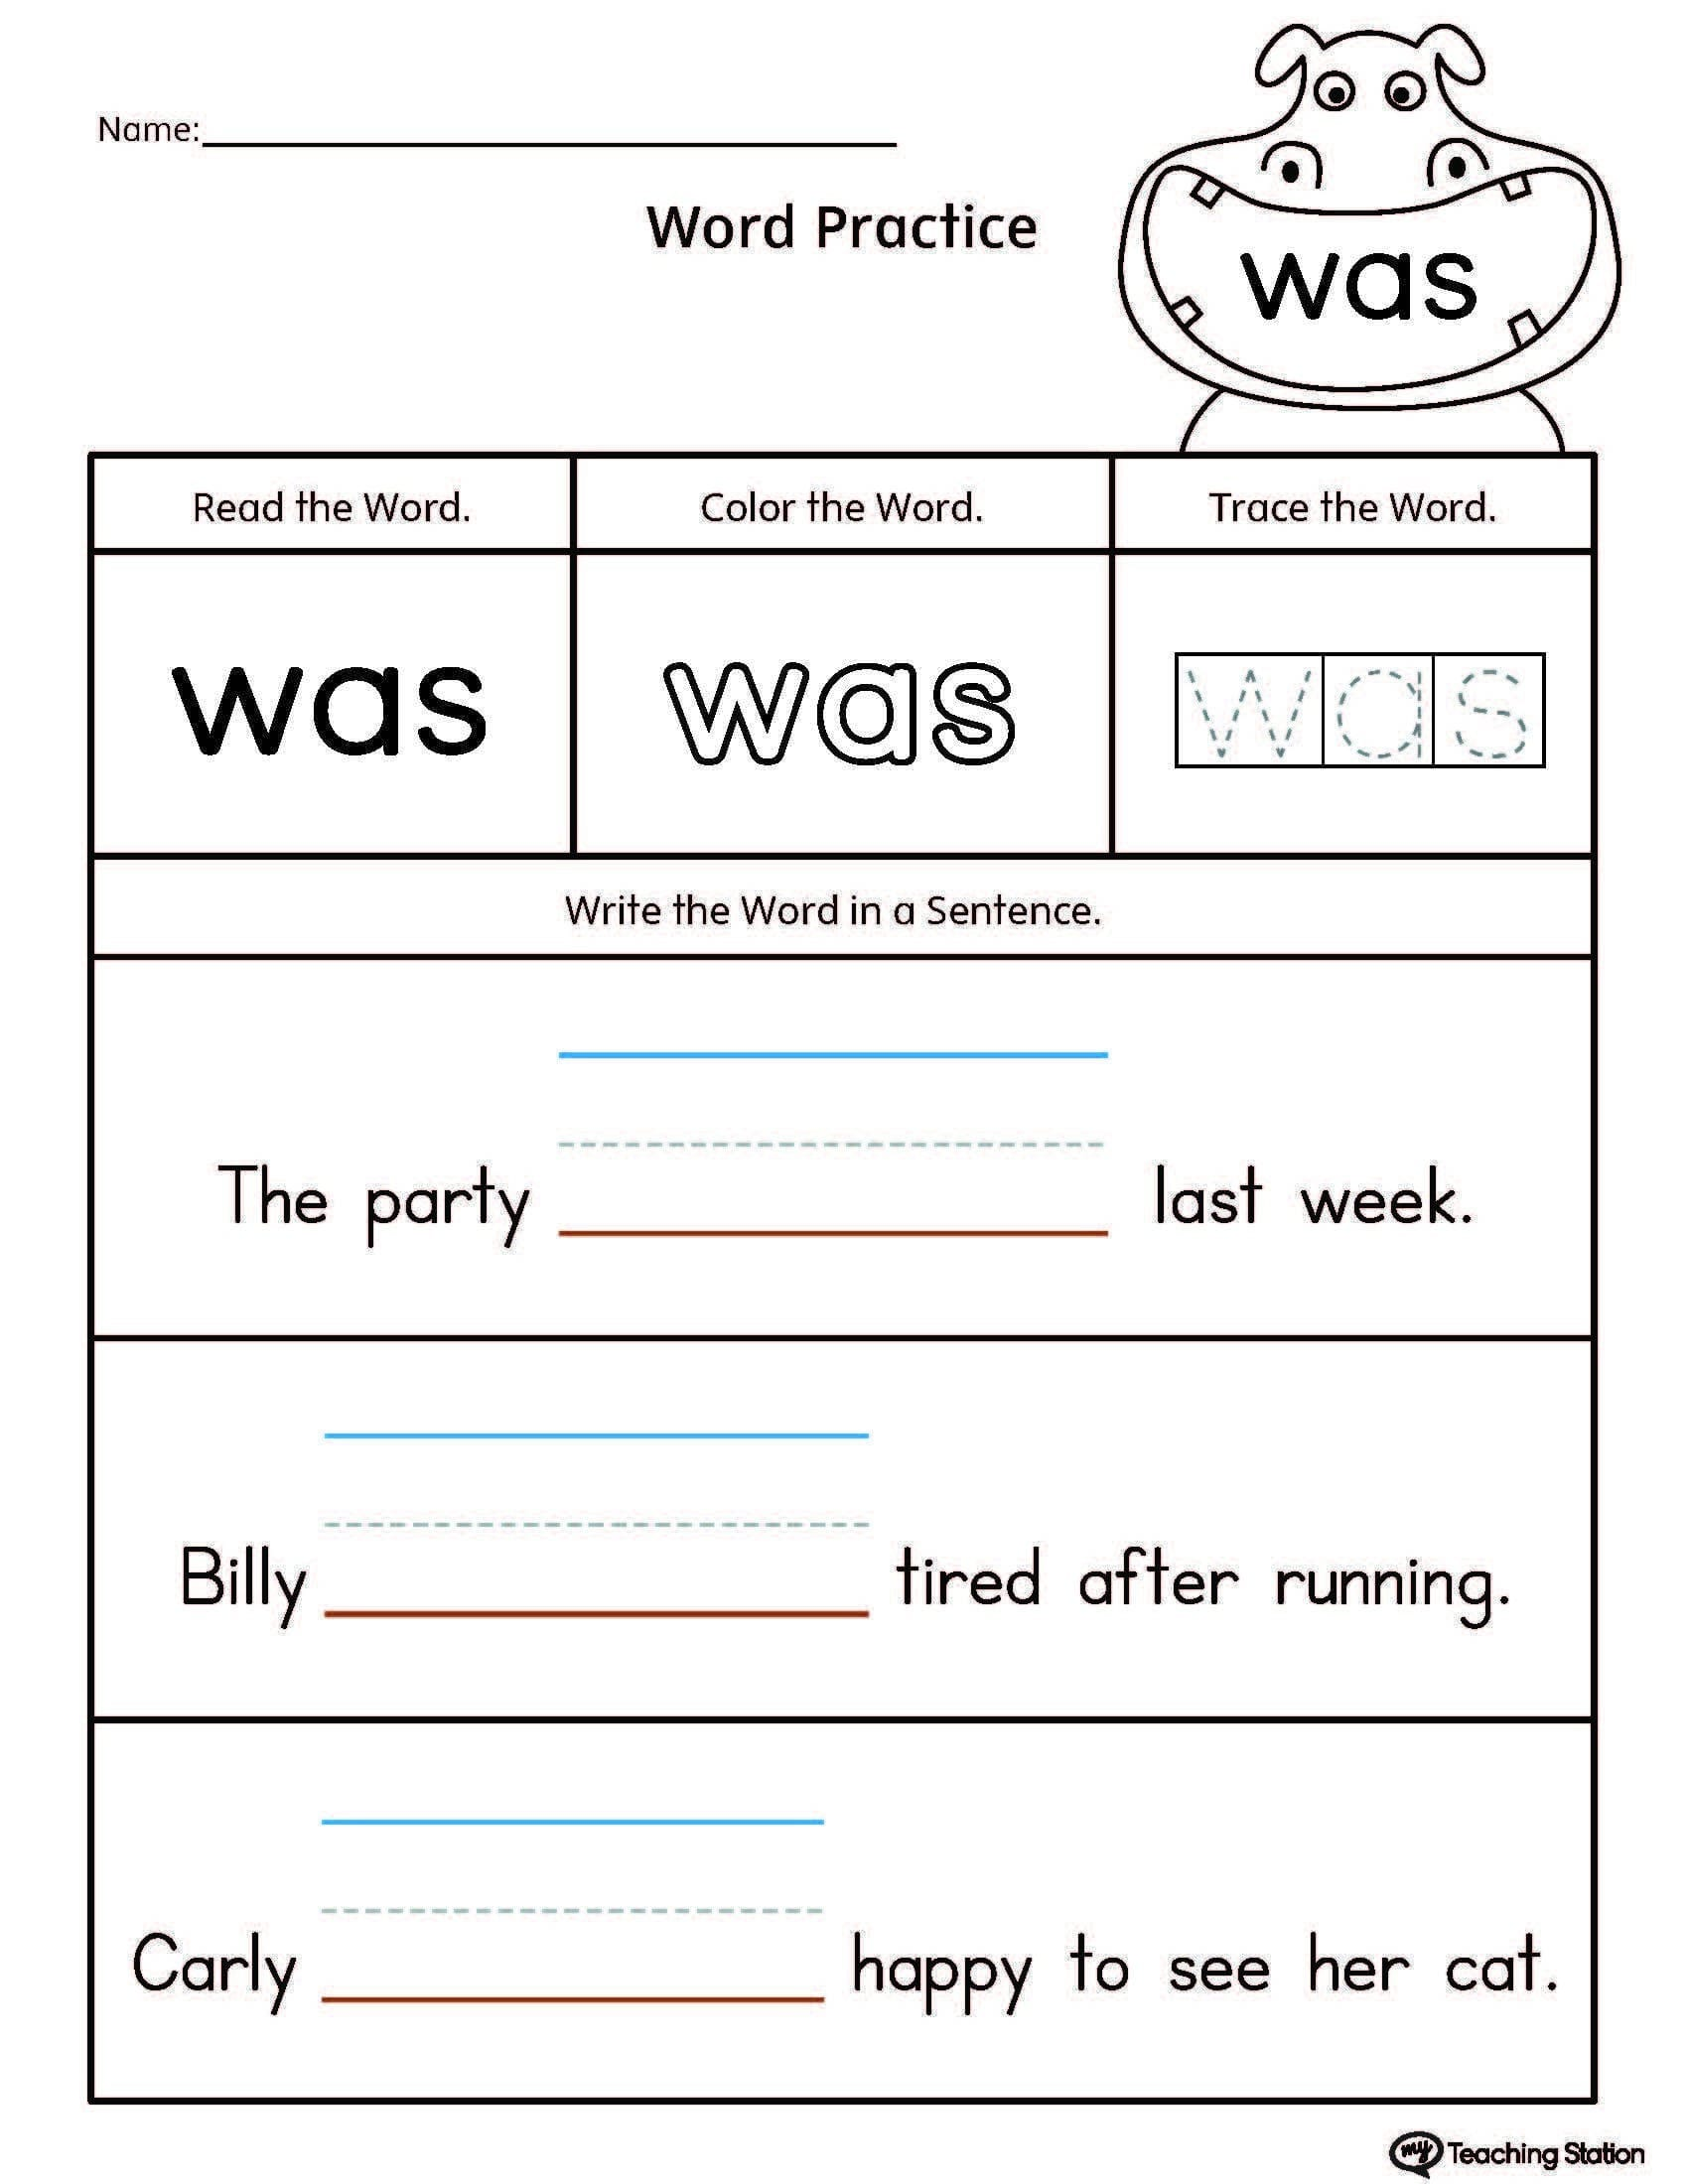 Handwriting Without Tears Worksheets Free Printable 70